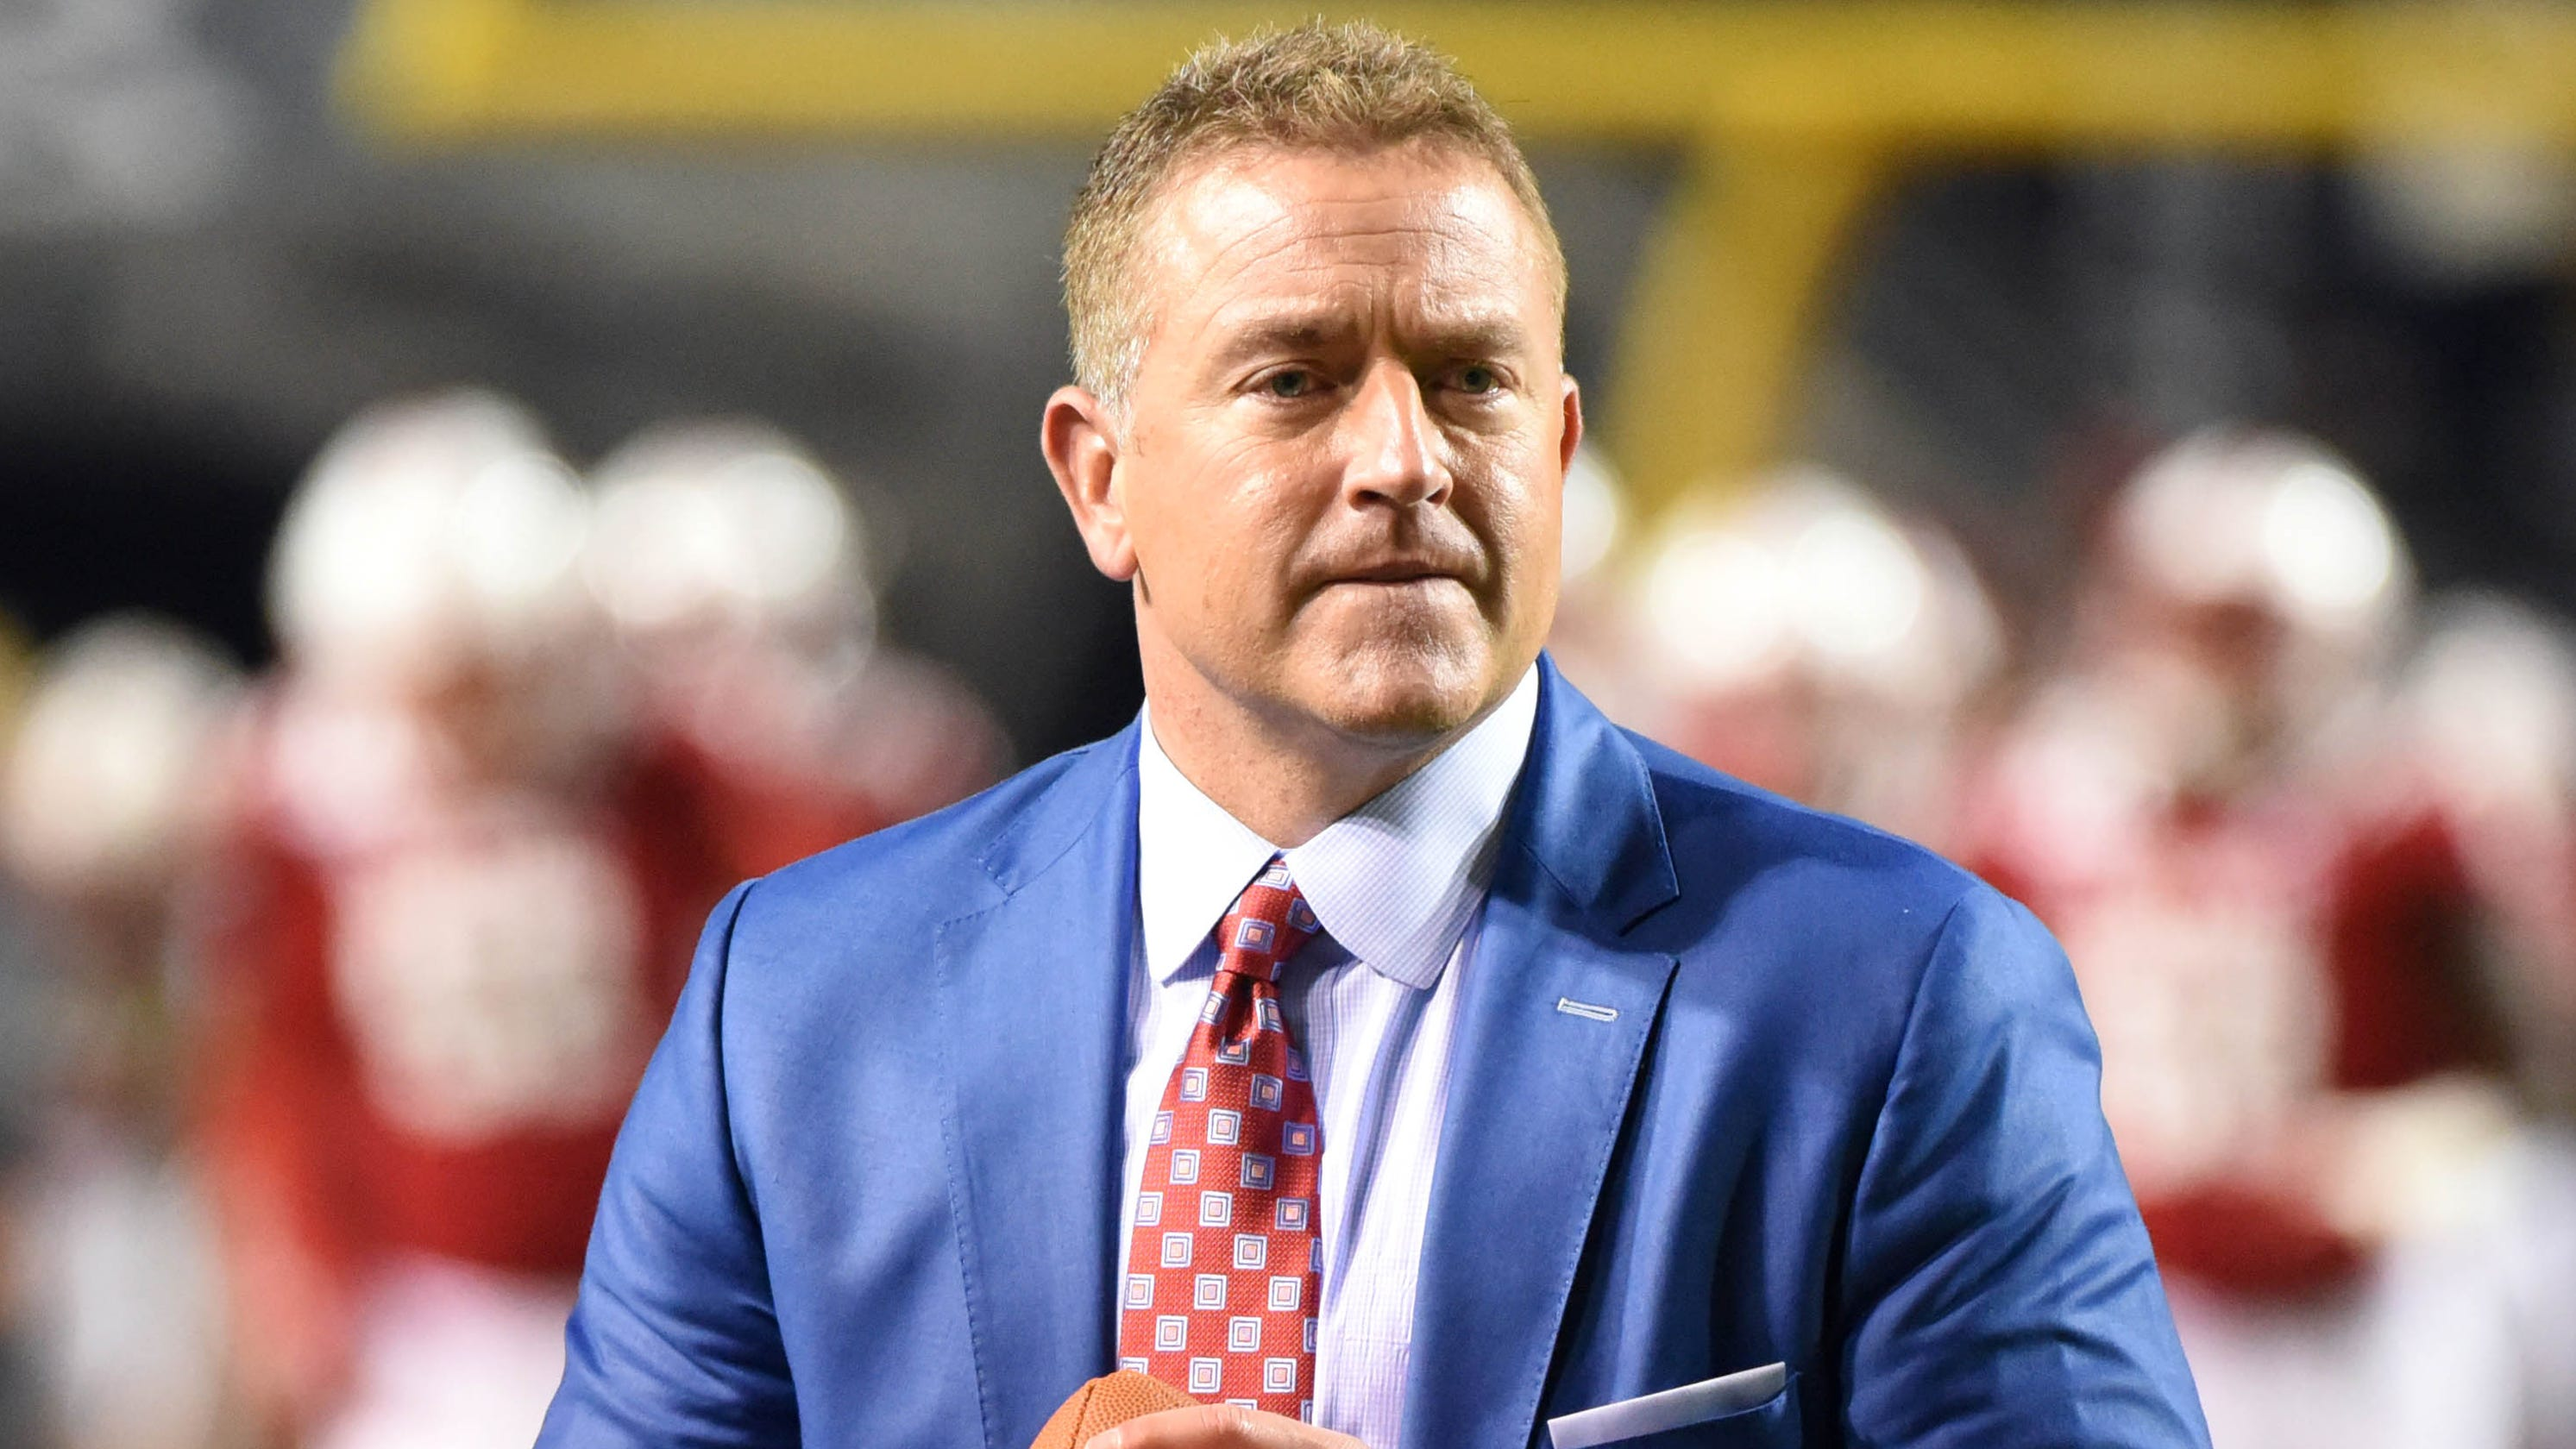 Kirk Herbstreit breaks down in tears during emotional message on racial injustice